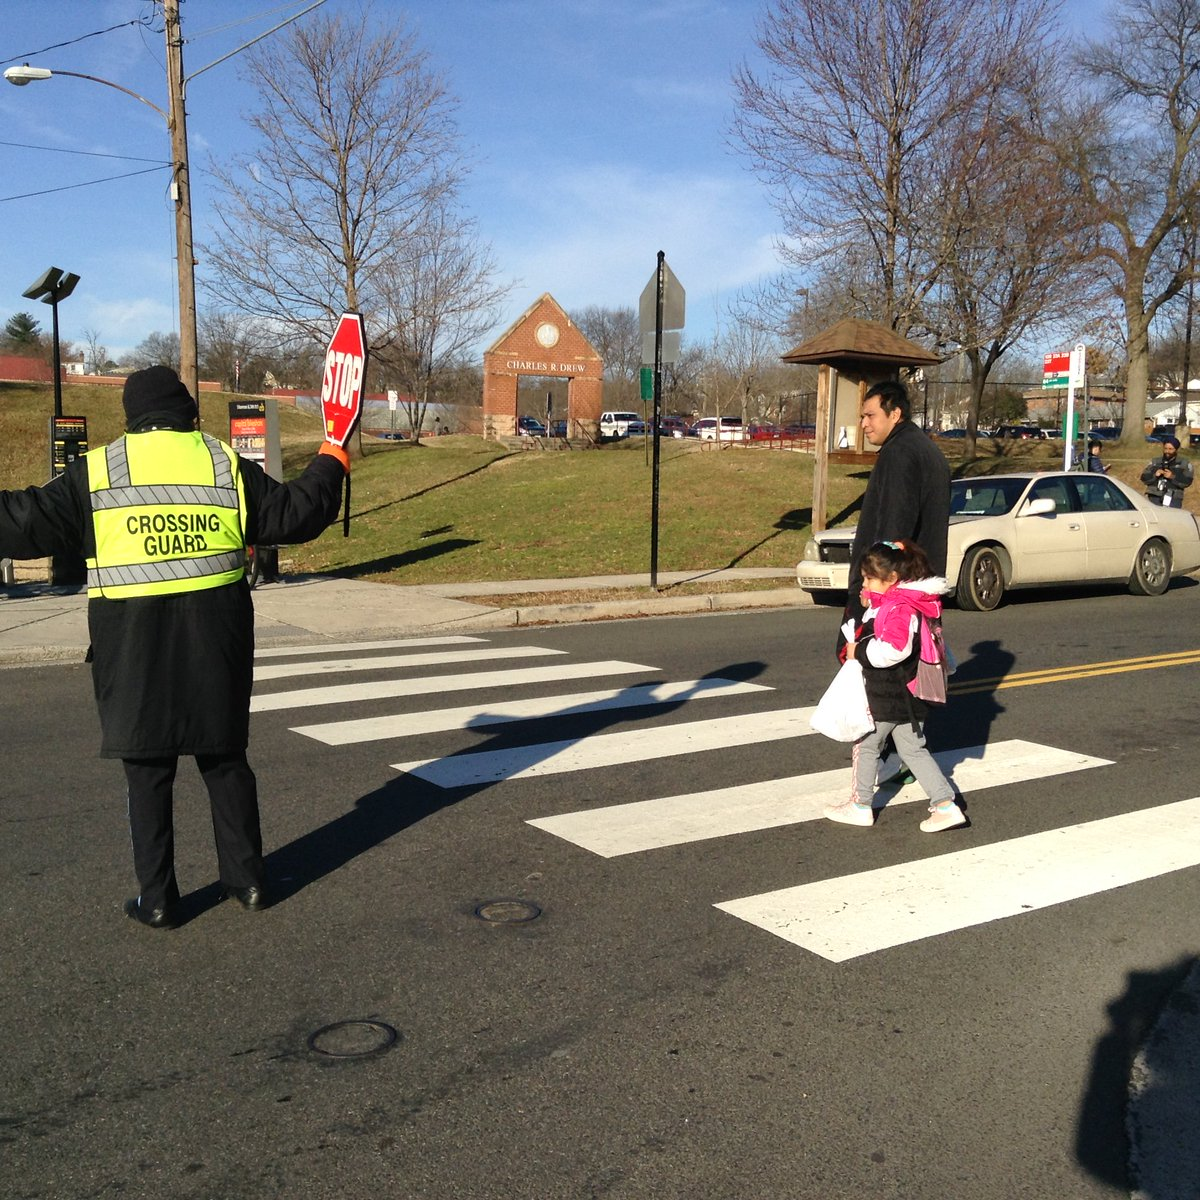 We love our crossing guard <a target='_blank' href='http://twitter.com/apsdrew'>@apsdrew</a> <a target='_blank' href='http://twitter.com/ArlingtonVaPD'>@ArlingtonVaPD</a> <a target='_blank' href='http://twitter.com/APSsaferoutes'>@APSsaferoutes</a> <a target='_blank' href='http://twitter.com/APSVirginia'>@APSVirginia</a> Thank You for helping our students and adults arrive to school safely <a target='_blank' href='http://search.twitter.com/search?q=APSCrossingGuardAppreciation'><a target='_blank' href='https://twitter.com/hashtag/APSCrossingGuardAppreciation?src=hash'>#APSCrossingGuardAppreciation</a></a> <a target='_blank' href='http://search.twitter.com/search?q=apsisawesome'><a target='_blank' href='https://twitter.com/hashtag/apsisawesome?src=hash'>#apsisawesome</a></a> <a target='_blank' href='https://t.co/Y0gySPupH3'>https://t.co/Y0gySPupH3</a>